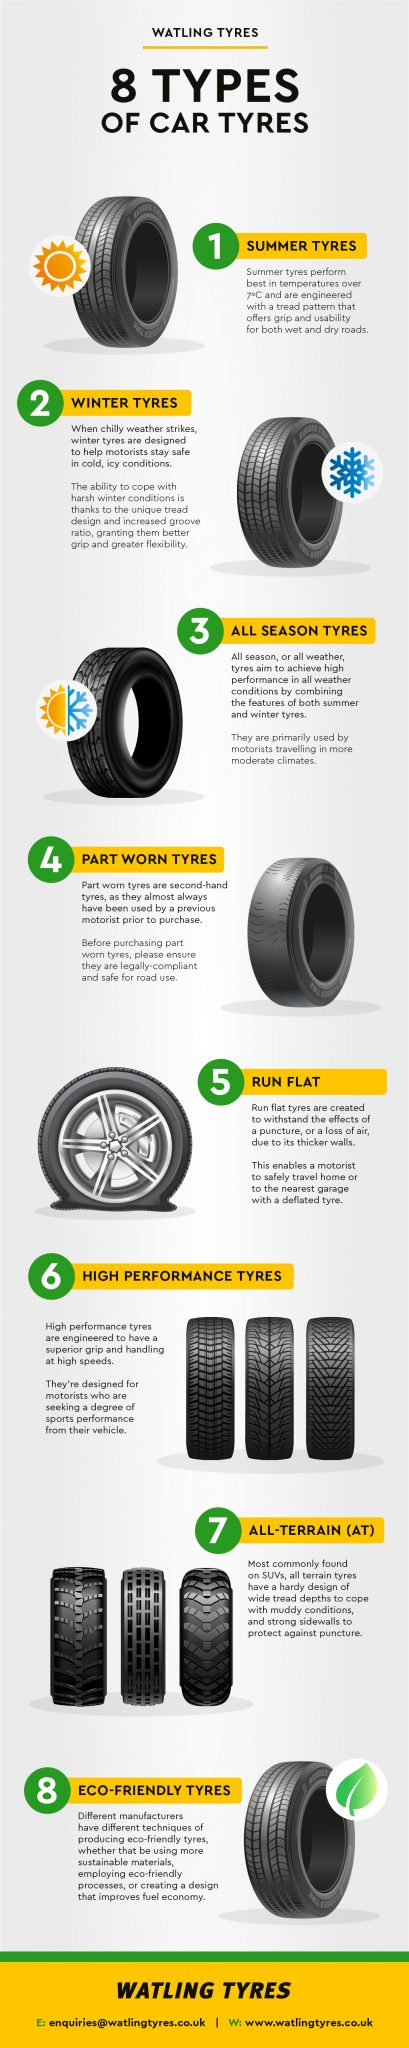 types of car tyres